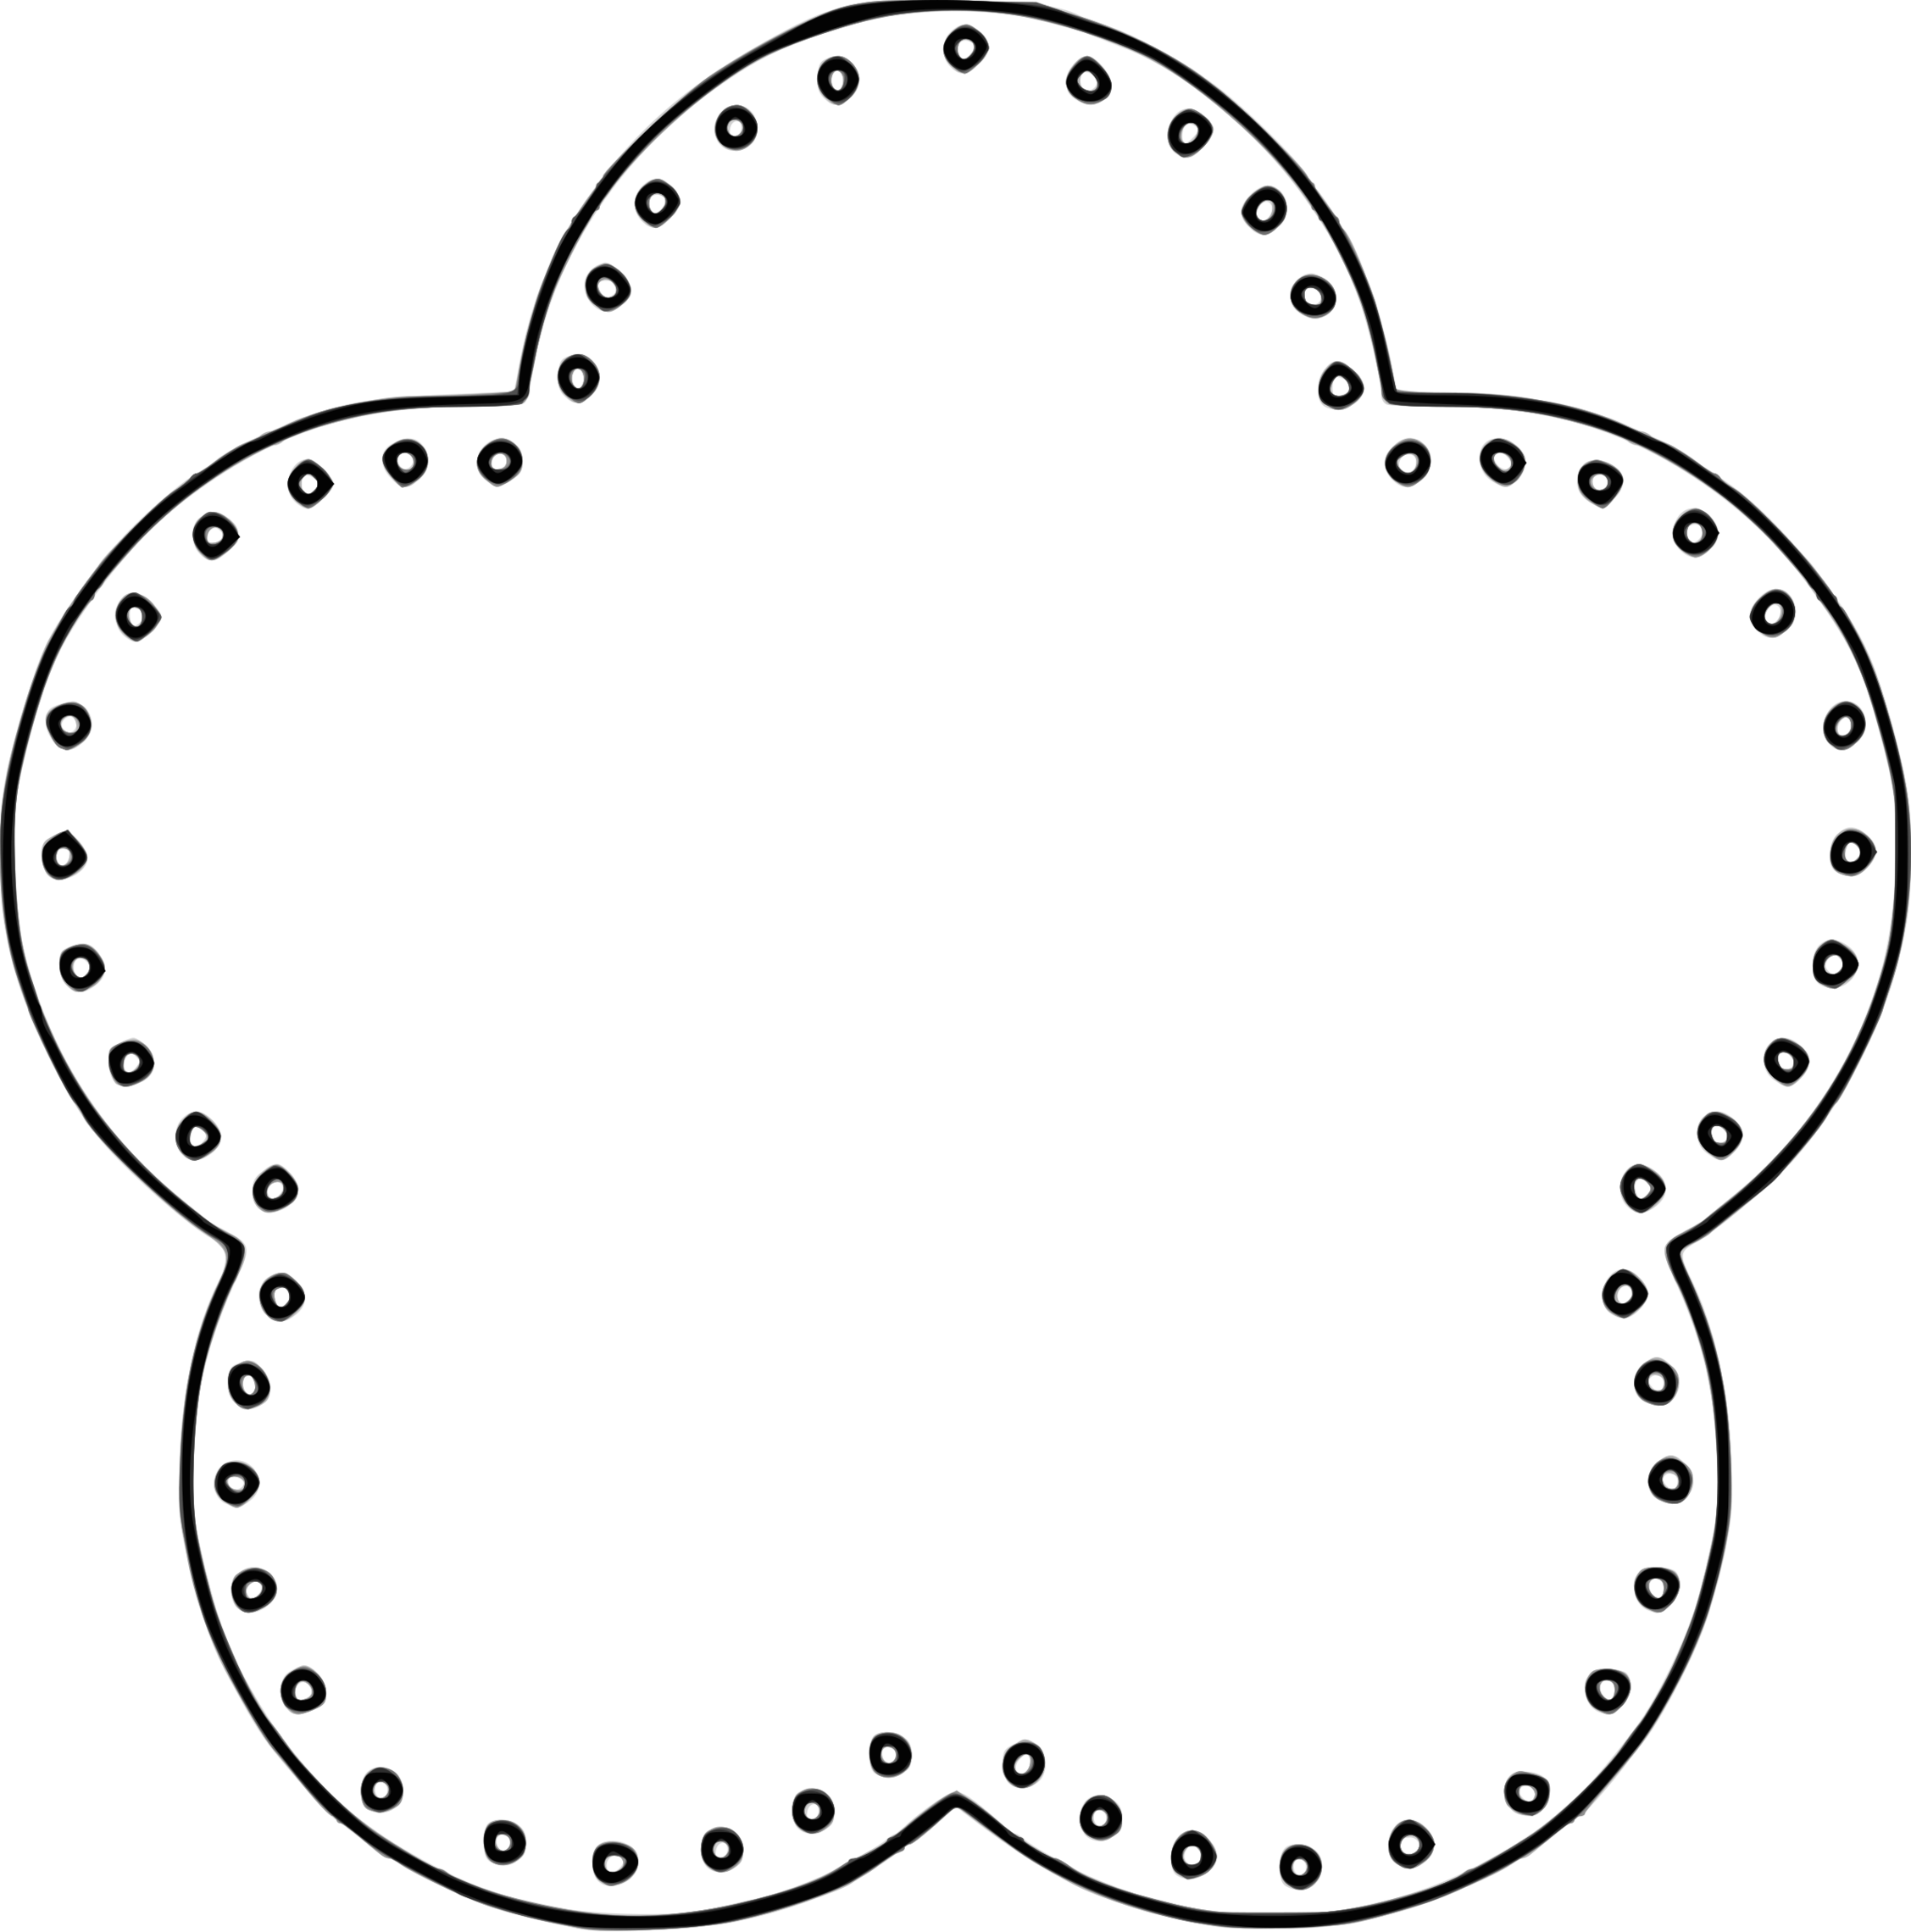 Scallop Circle Template Png Clipart - Free to use Clip Art Resource